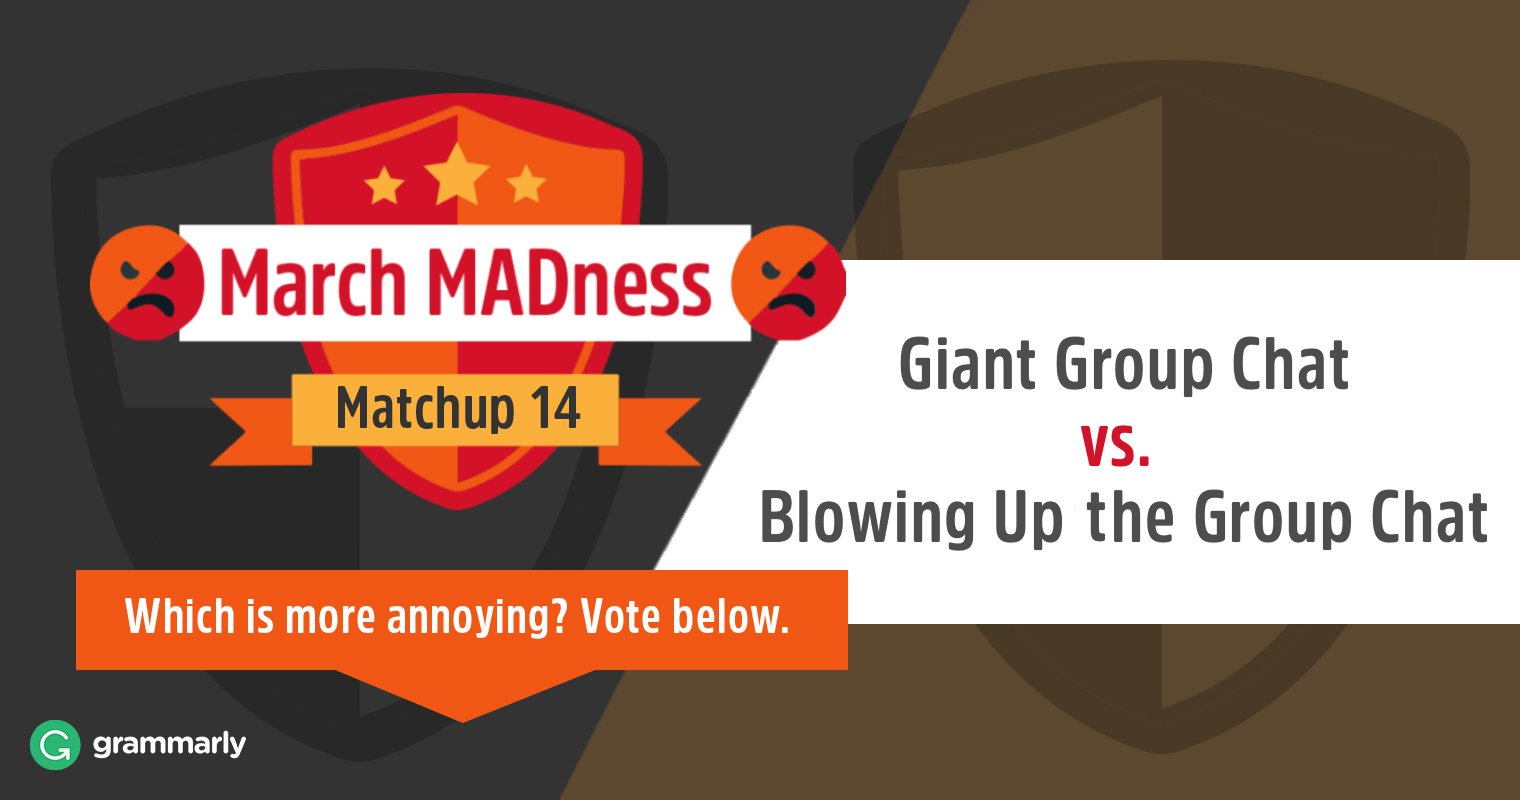 March MADness: Giant Group Chat vs. Blowing Up the Group Chat image